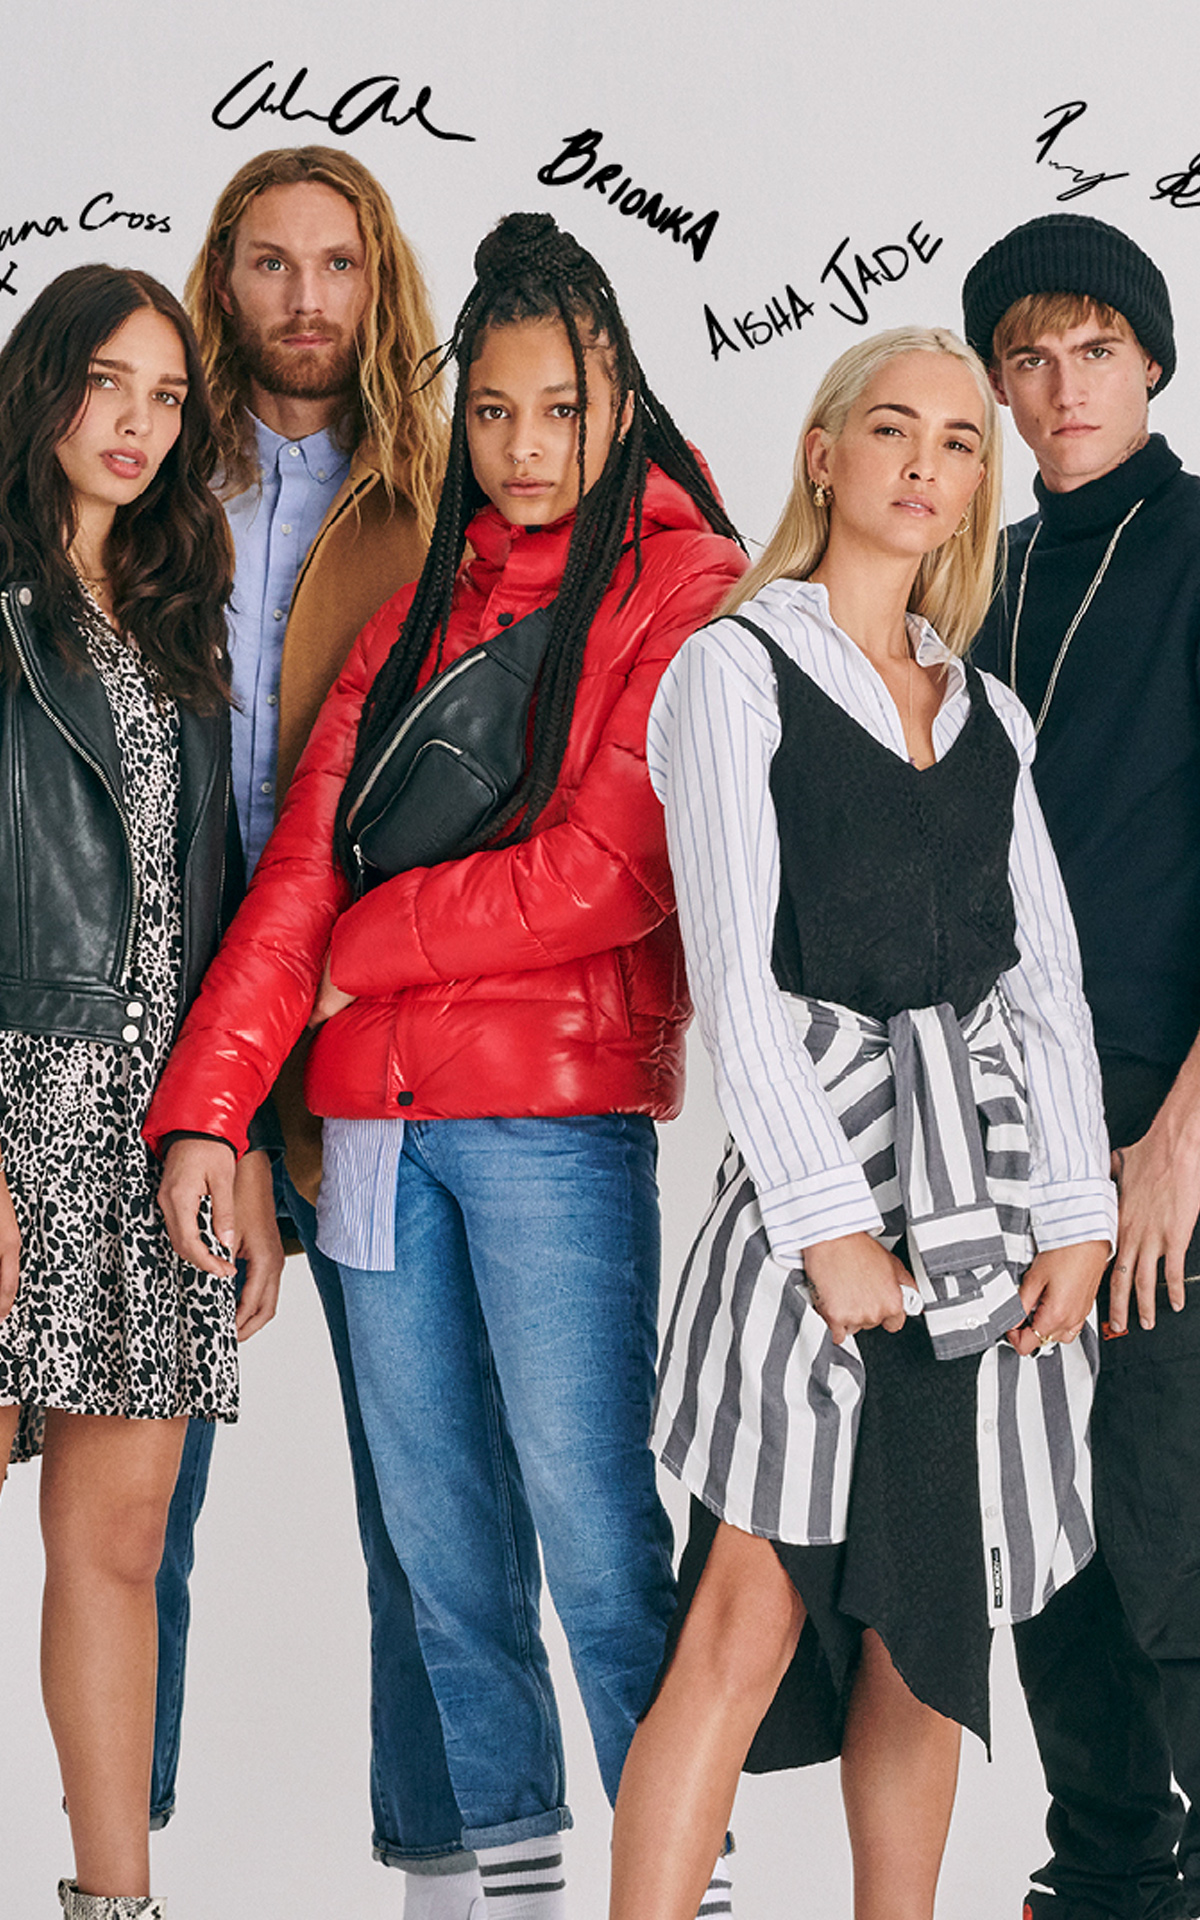 Models in superdry attire